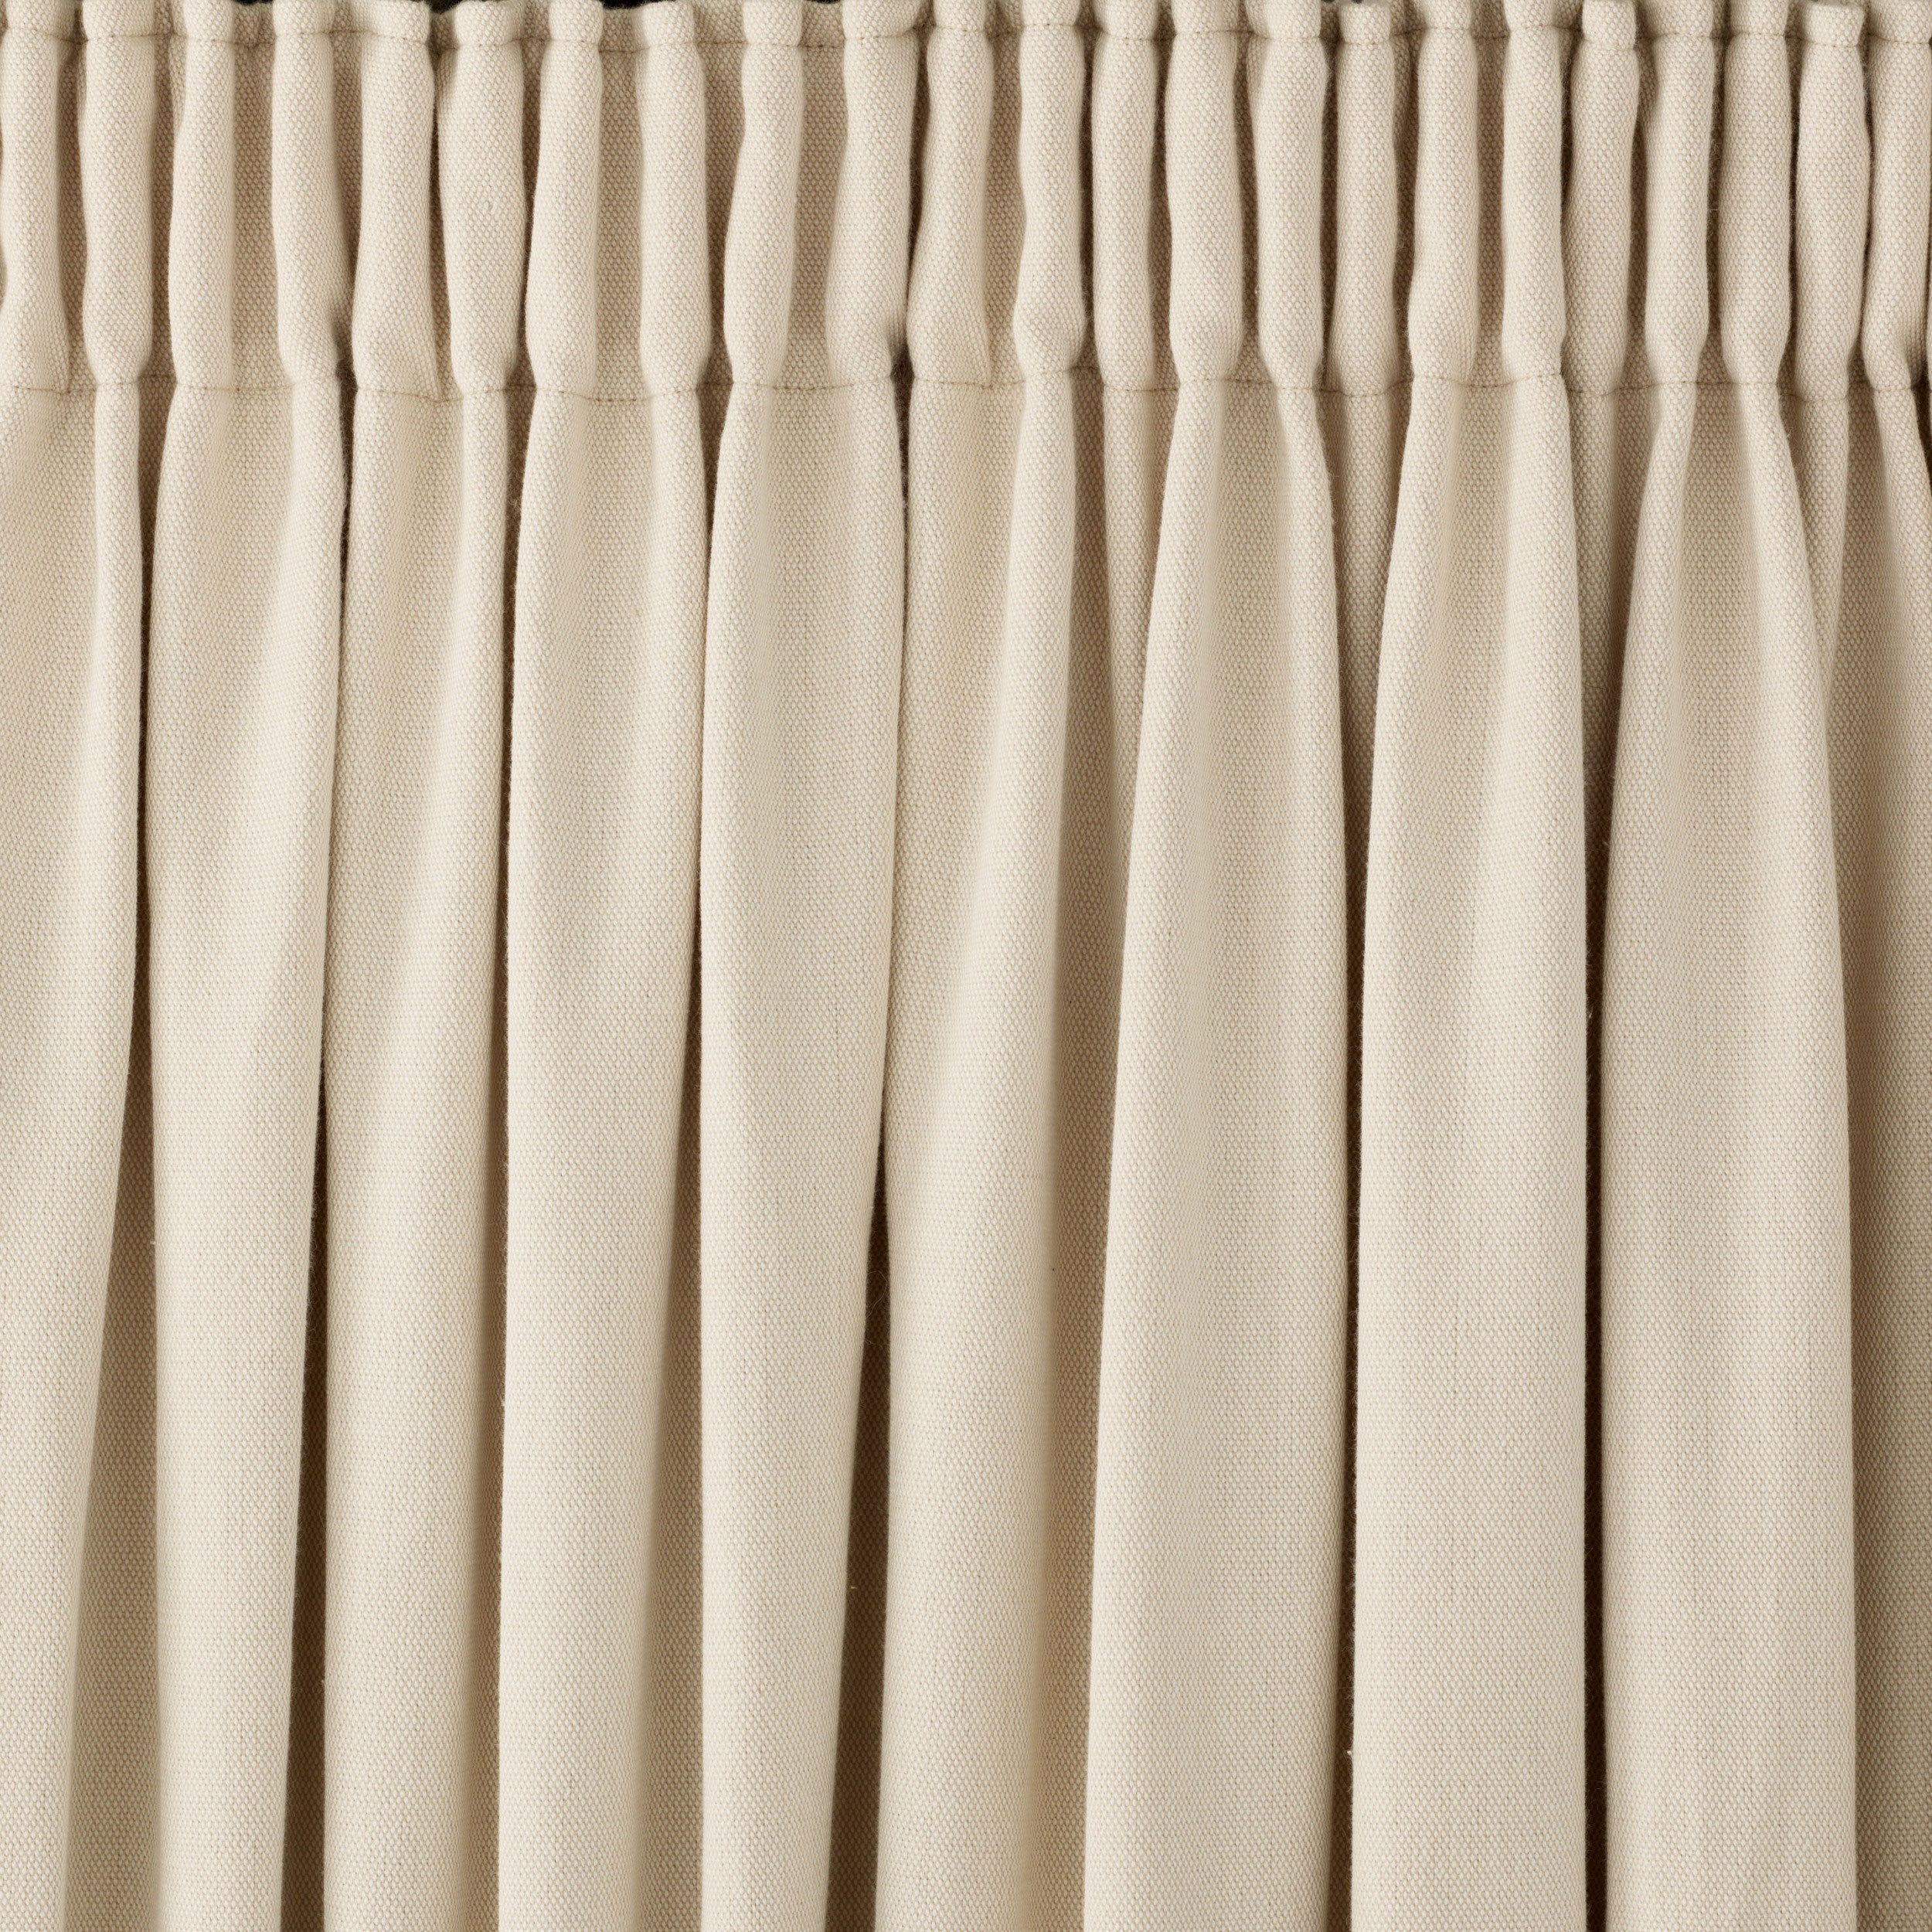 lynton pencil pleat ready made curtains at laura ashley. Black Bedroom Furniture Sets. Home Design Ideas